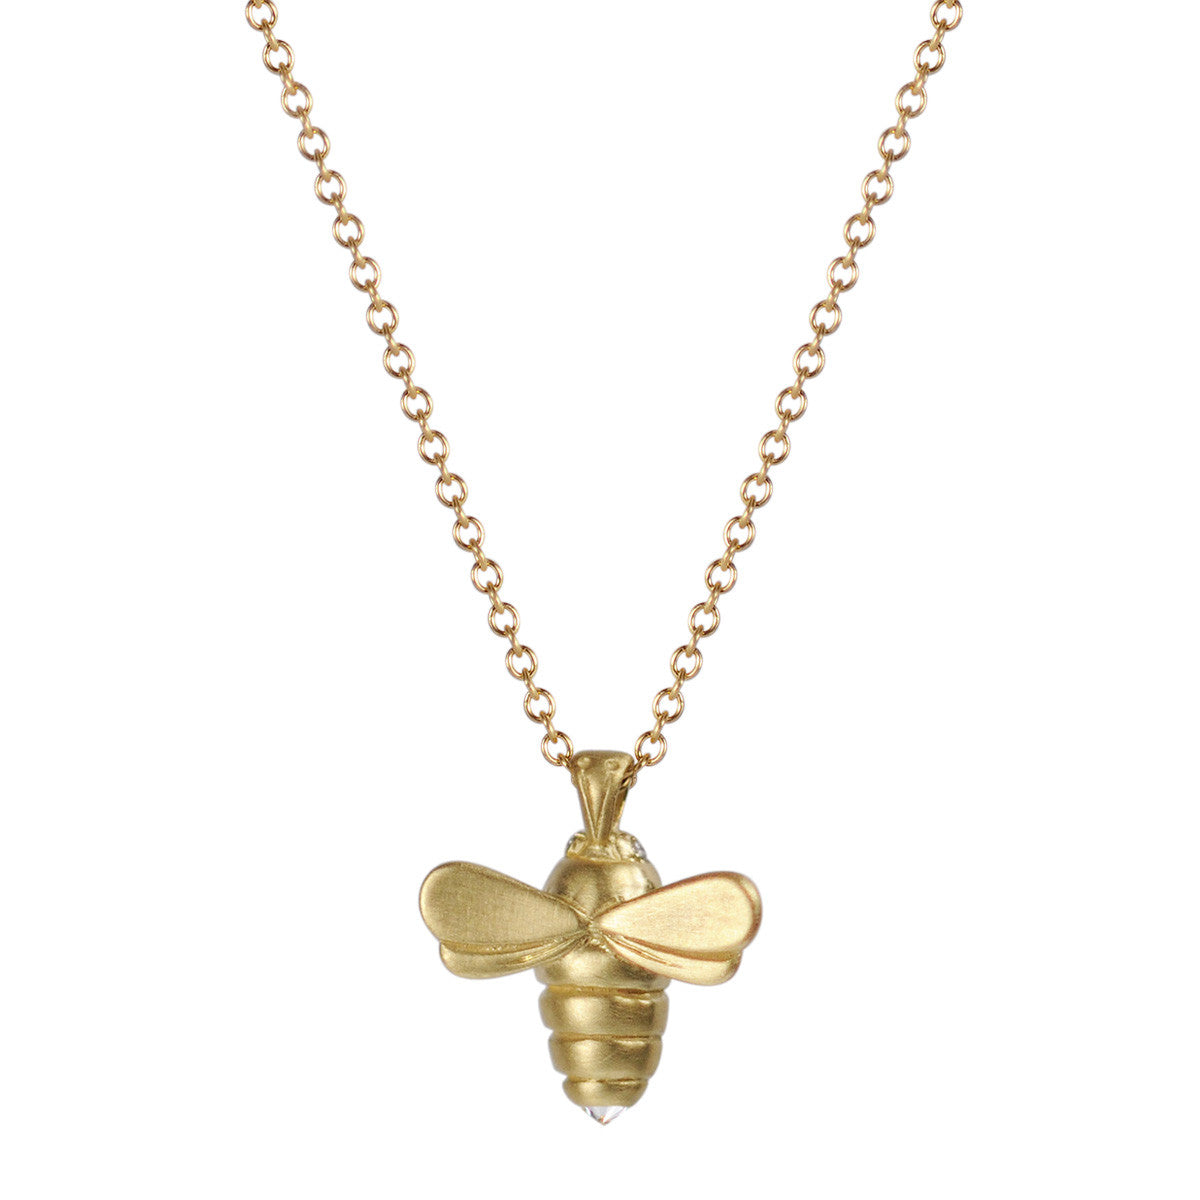 18K Gold Bumblebee Pendant with Diamond Eyes and Stinger